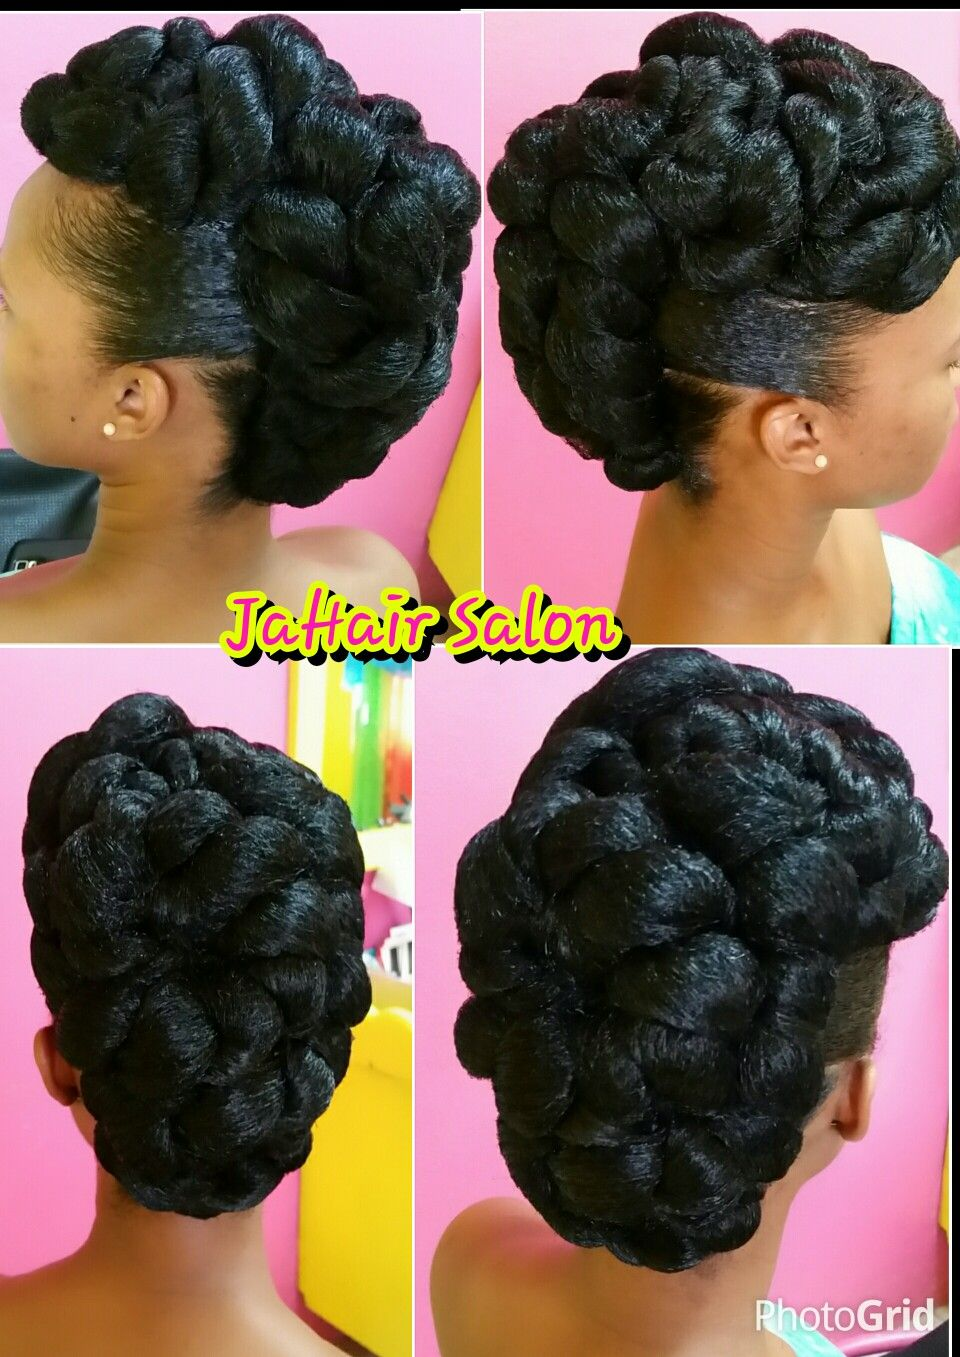 Pin By Sophia Roberson On Hairstyles Natural Hair Updo Braided Updo Styles Natural Hair Styles